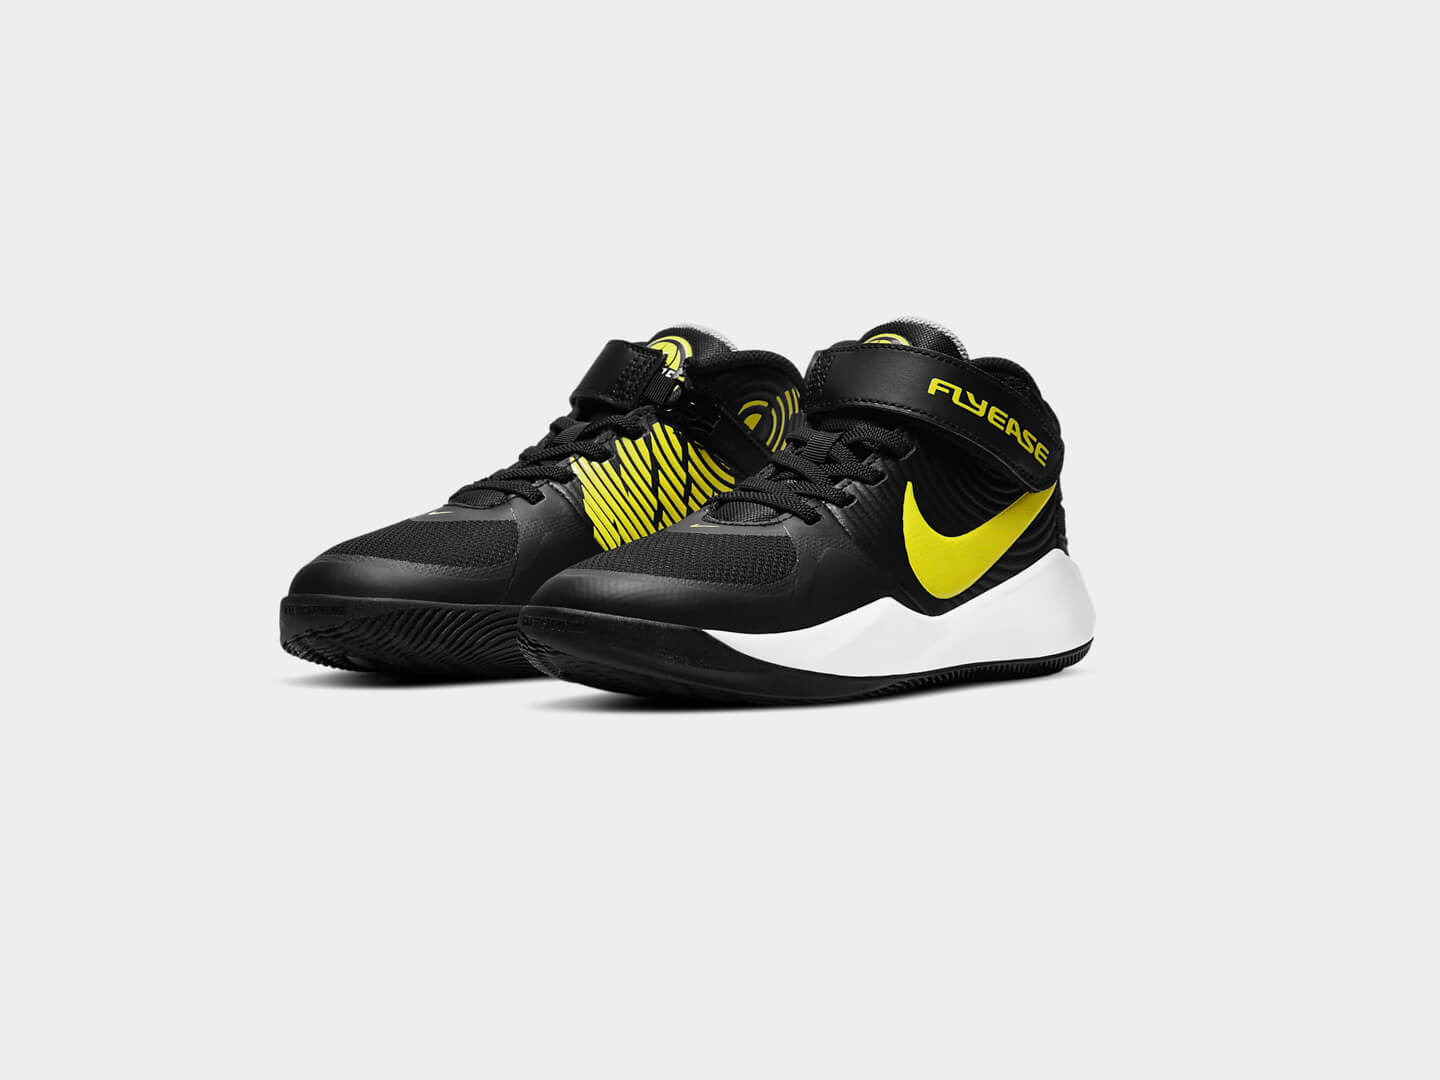 Кроссовки Nike Team Hustle D 9 FlyEase / black, high voltage